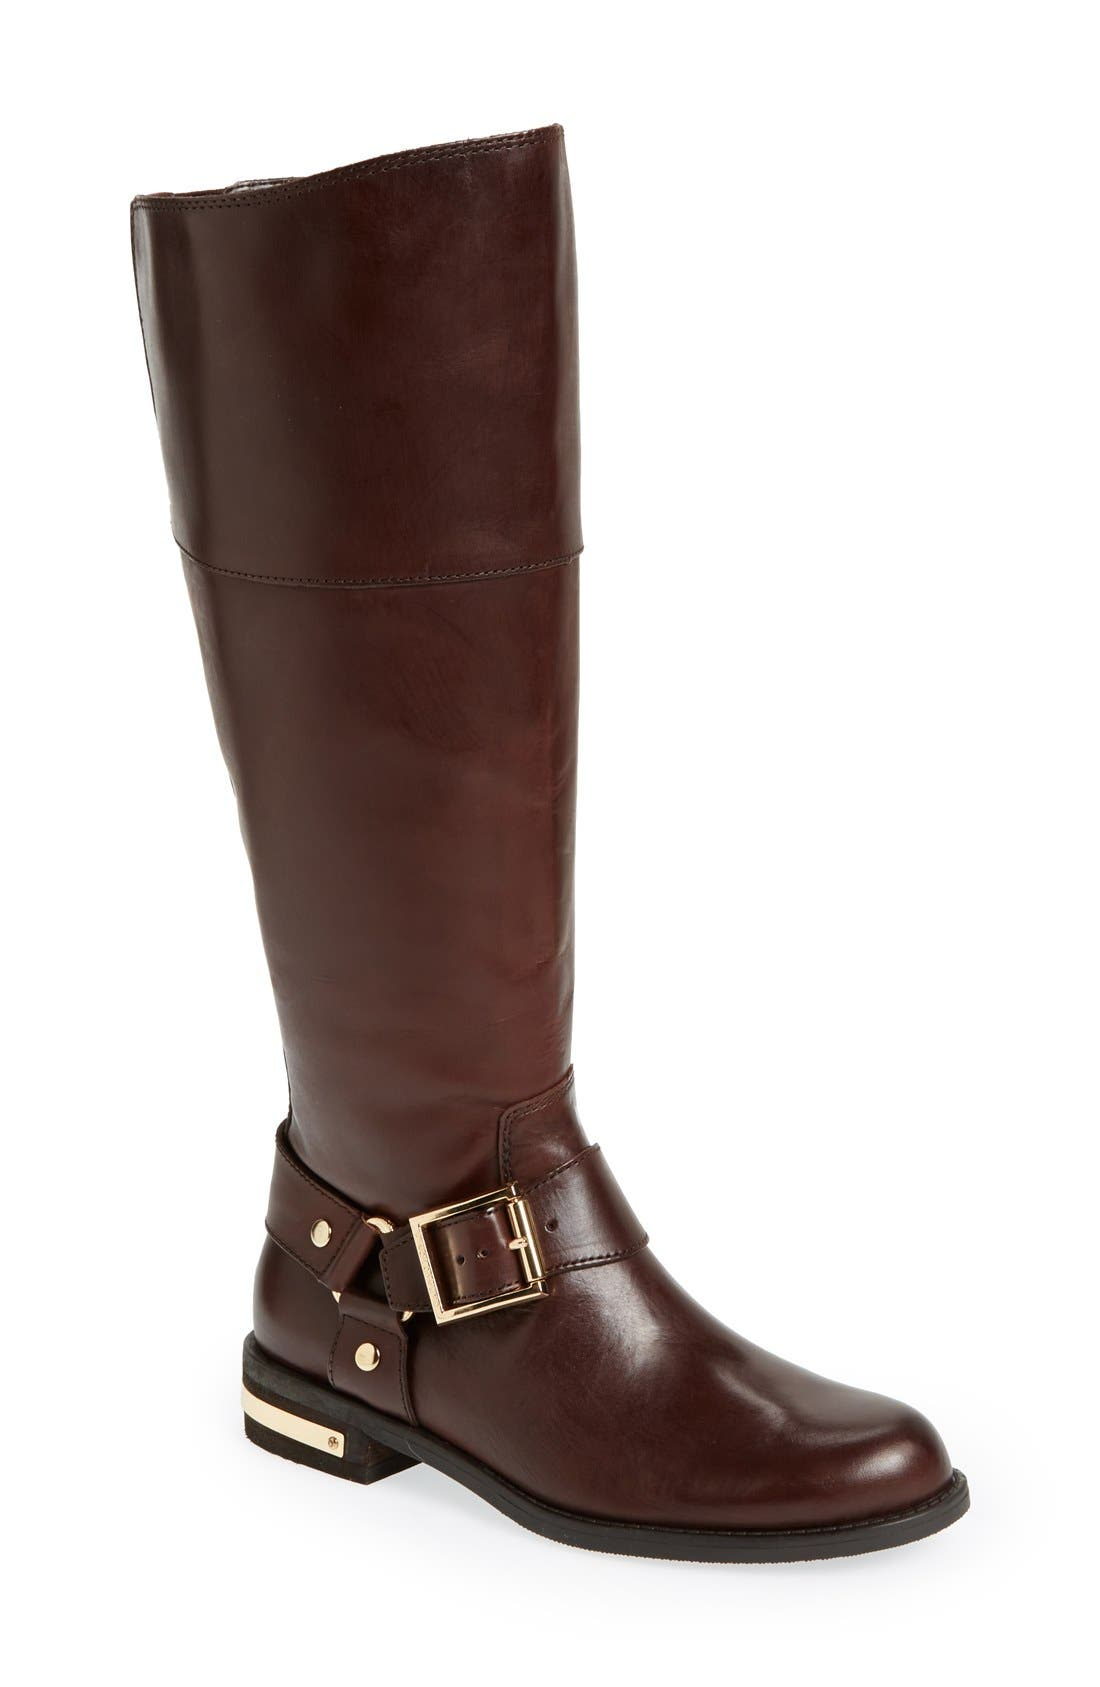 Main Image - Vince Camuto 'Kallie' Leather Riding Boot (Women)(Wide Calf)